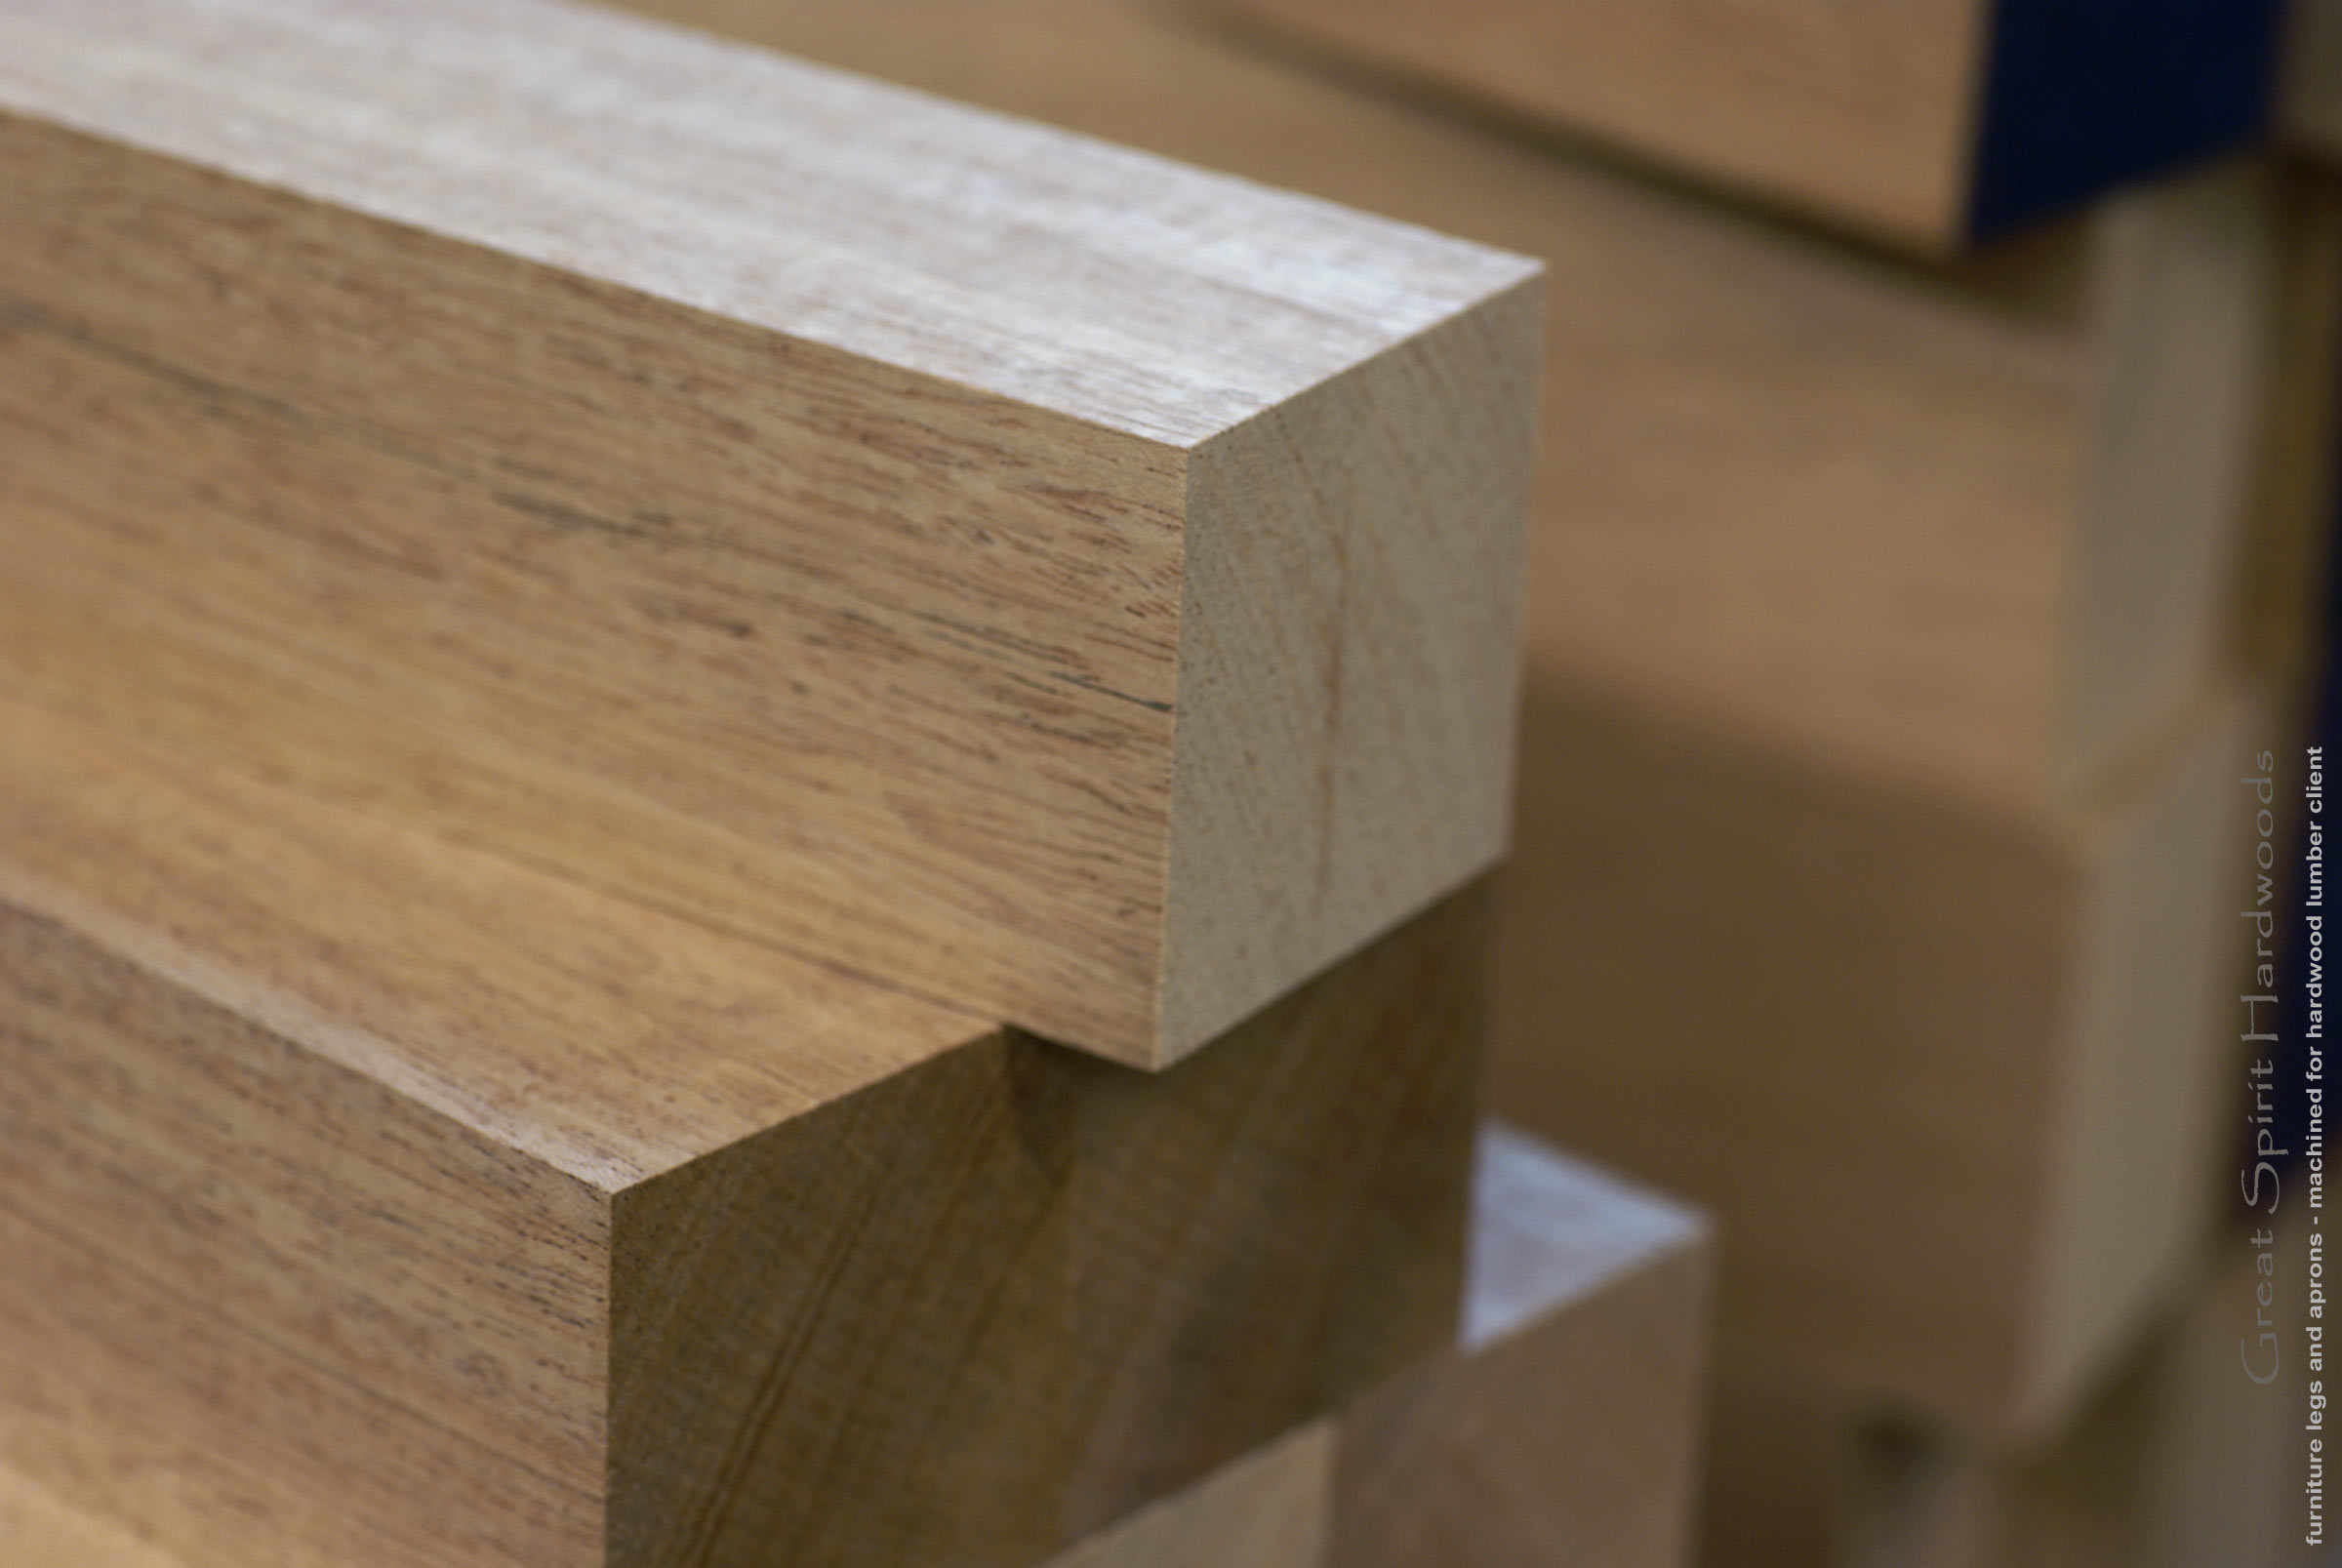 woodworking service | surfacing, wide belt sanding in dundee, il